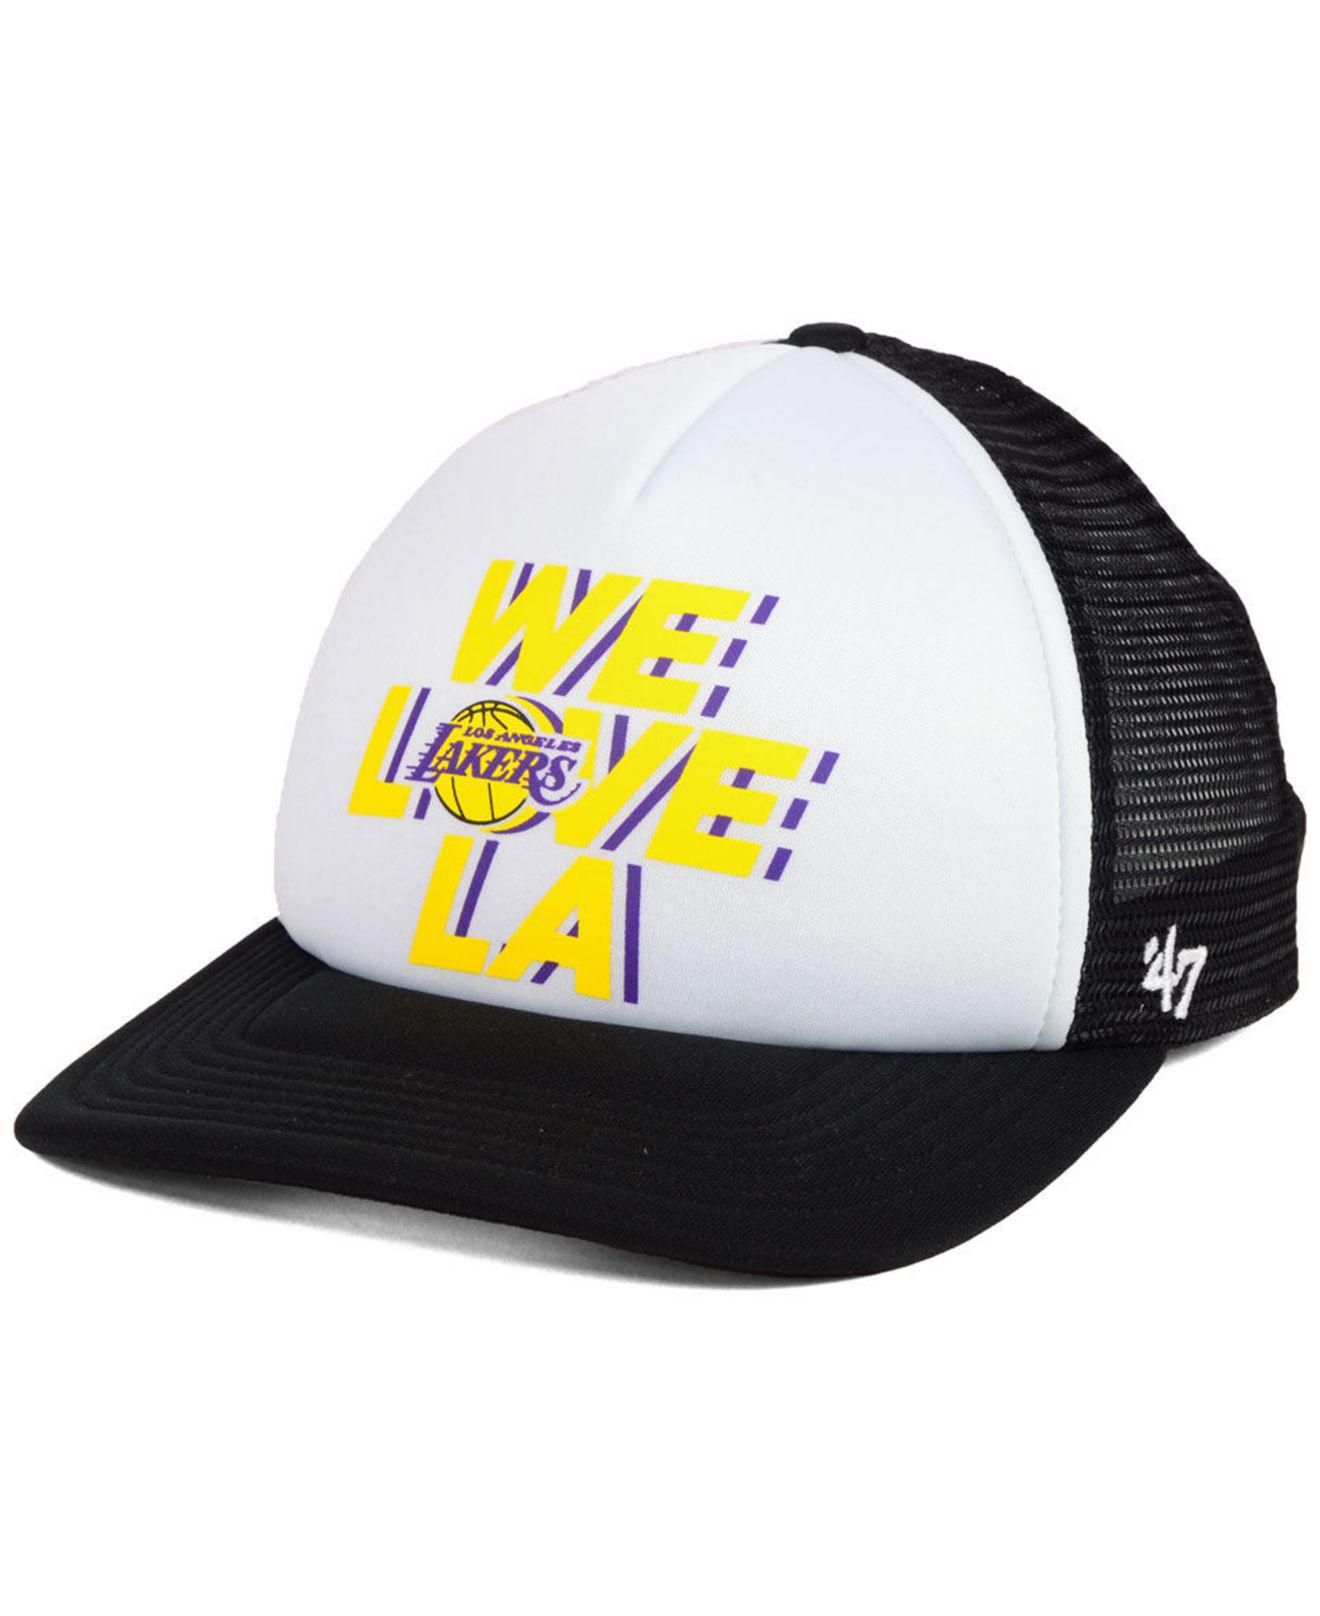 new product d814d b8085 ... canada lyst 47 brand los angeles lakers region mesh mvp cap in black  for men 171d6